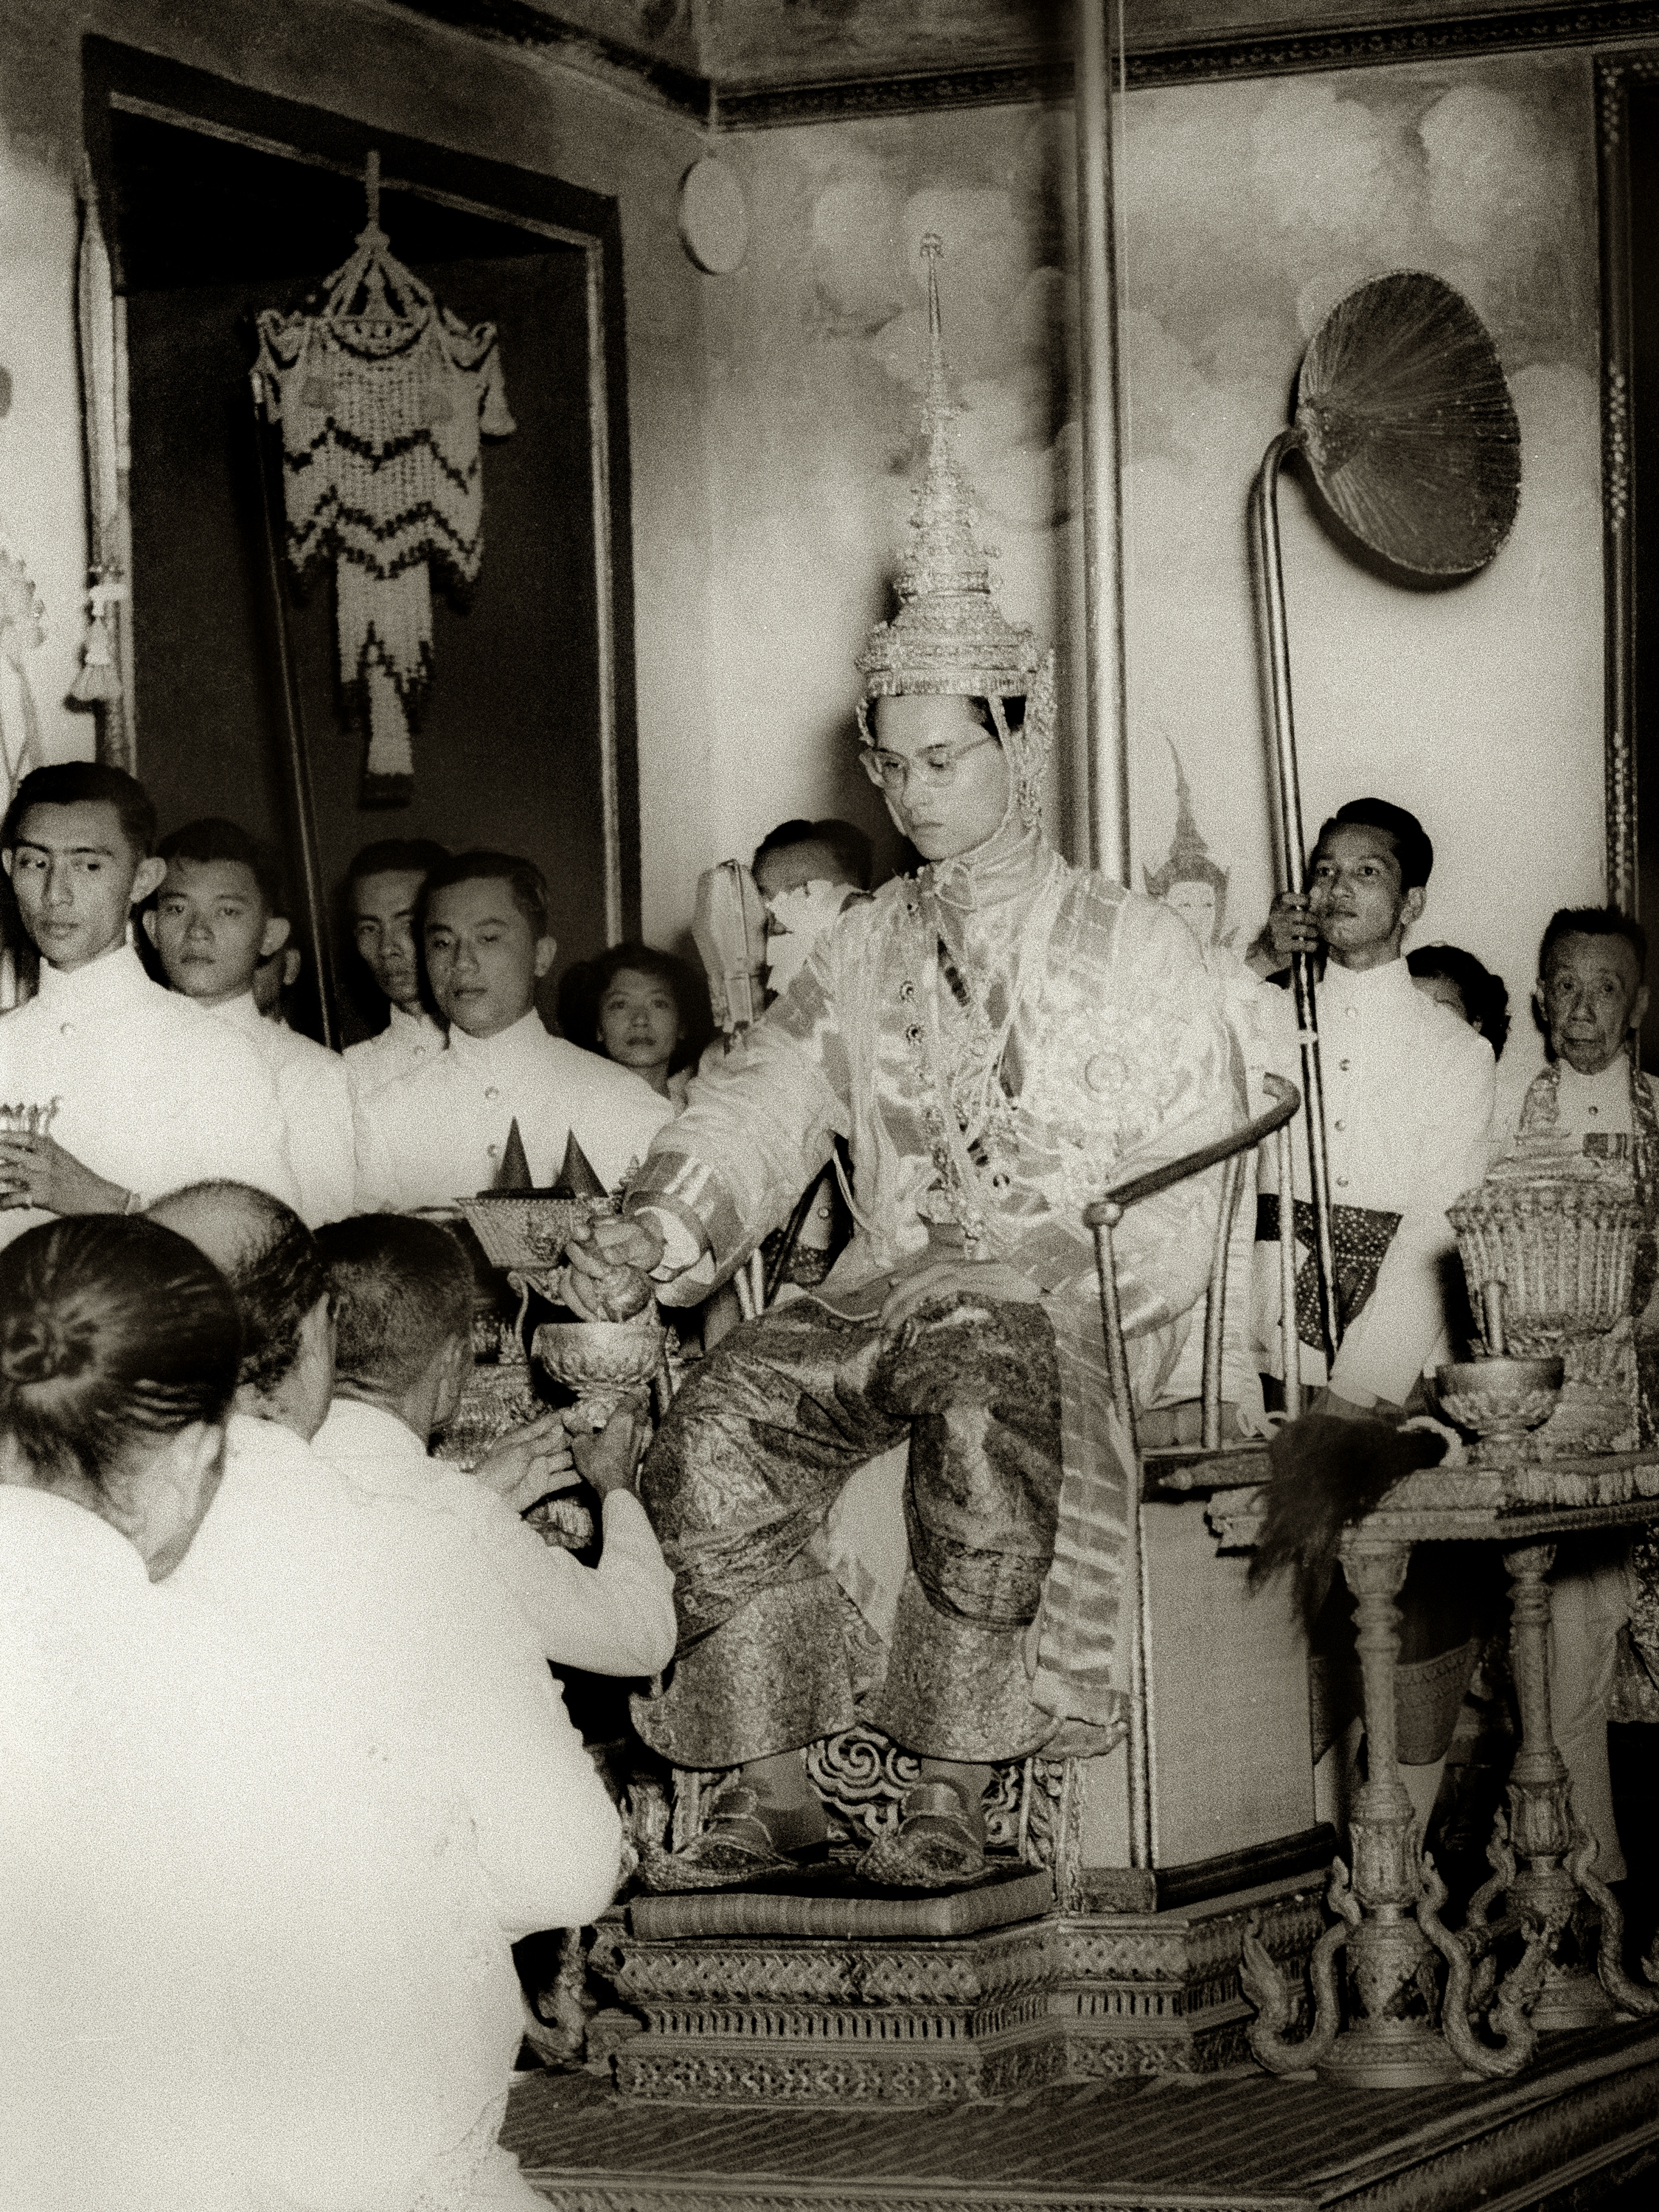 King Rama IX being presented with regalia at coronation image by Wikimedia Commons.